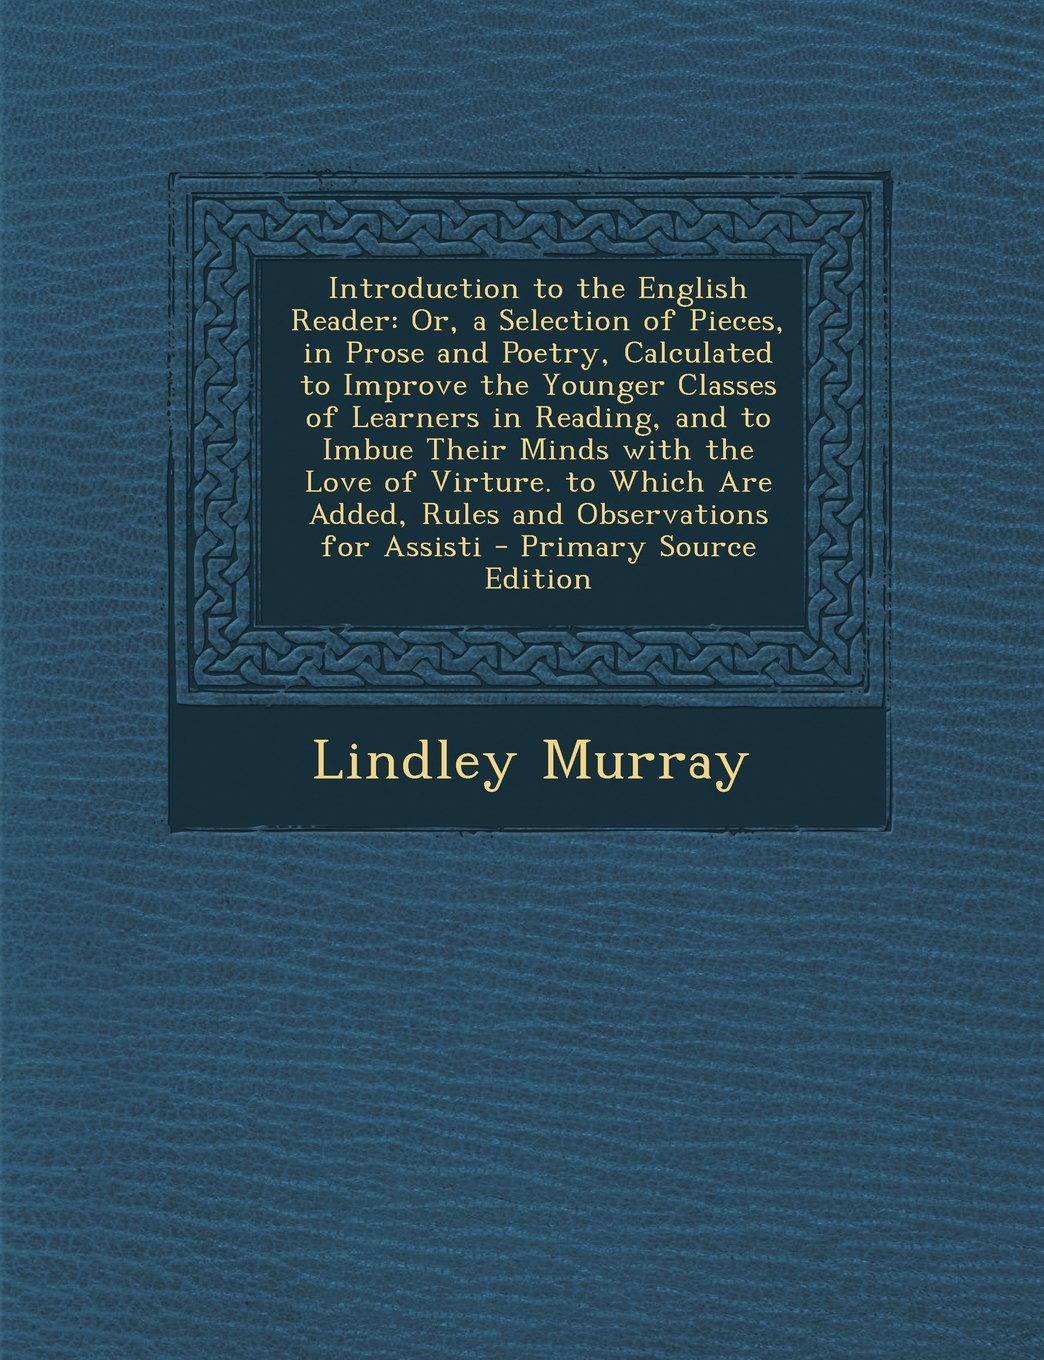 Download Introduction to the English Reader: Or, a Selection of Pieces, in Prose and Poetry, Calculated to Improve the Younger Classes of Learners in Reading, PDF